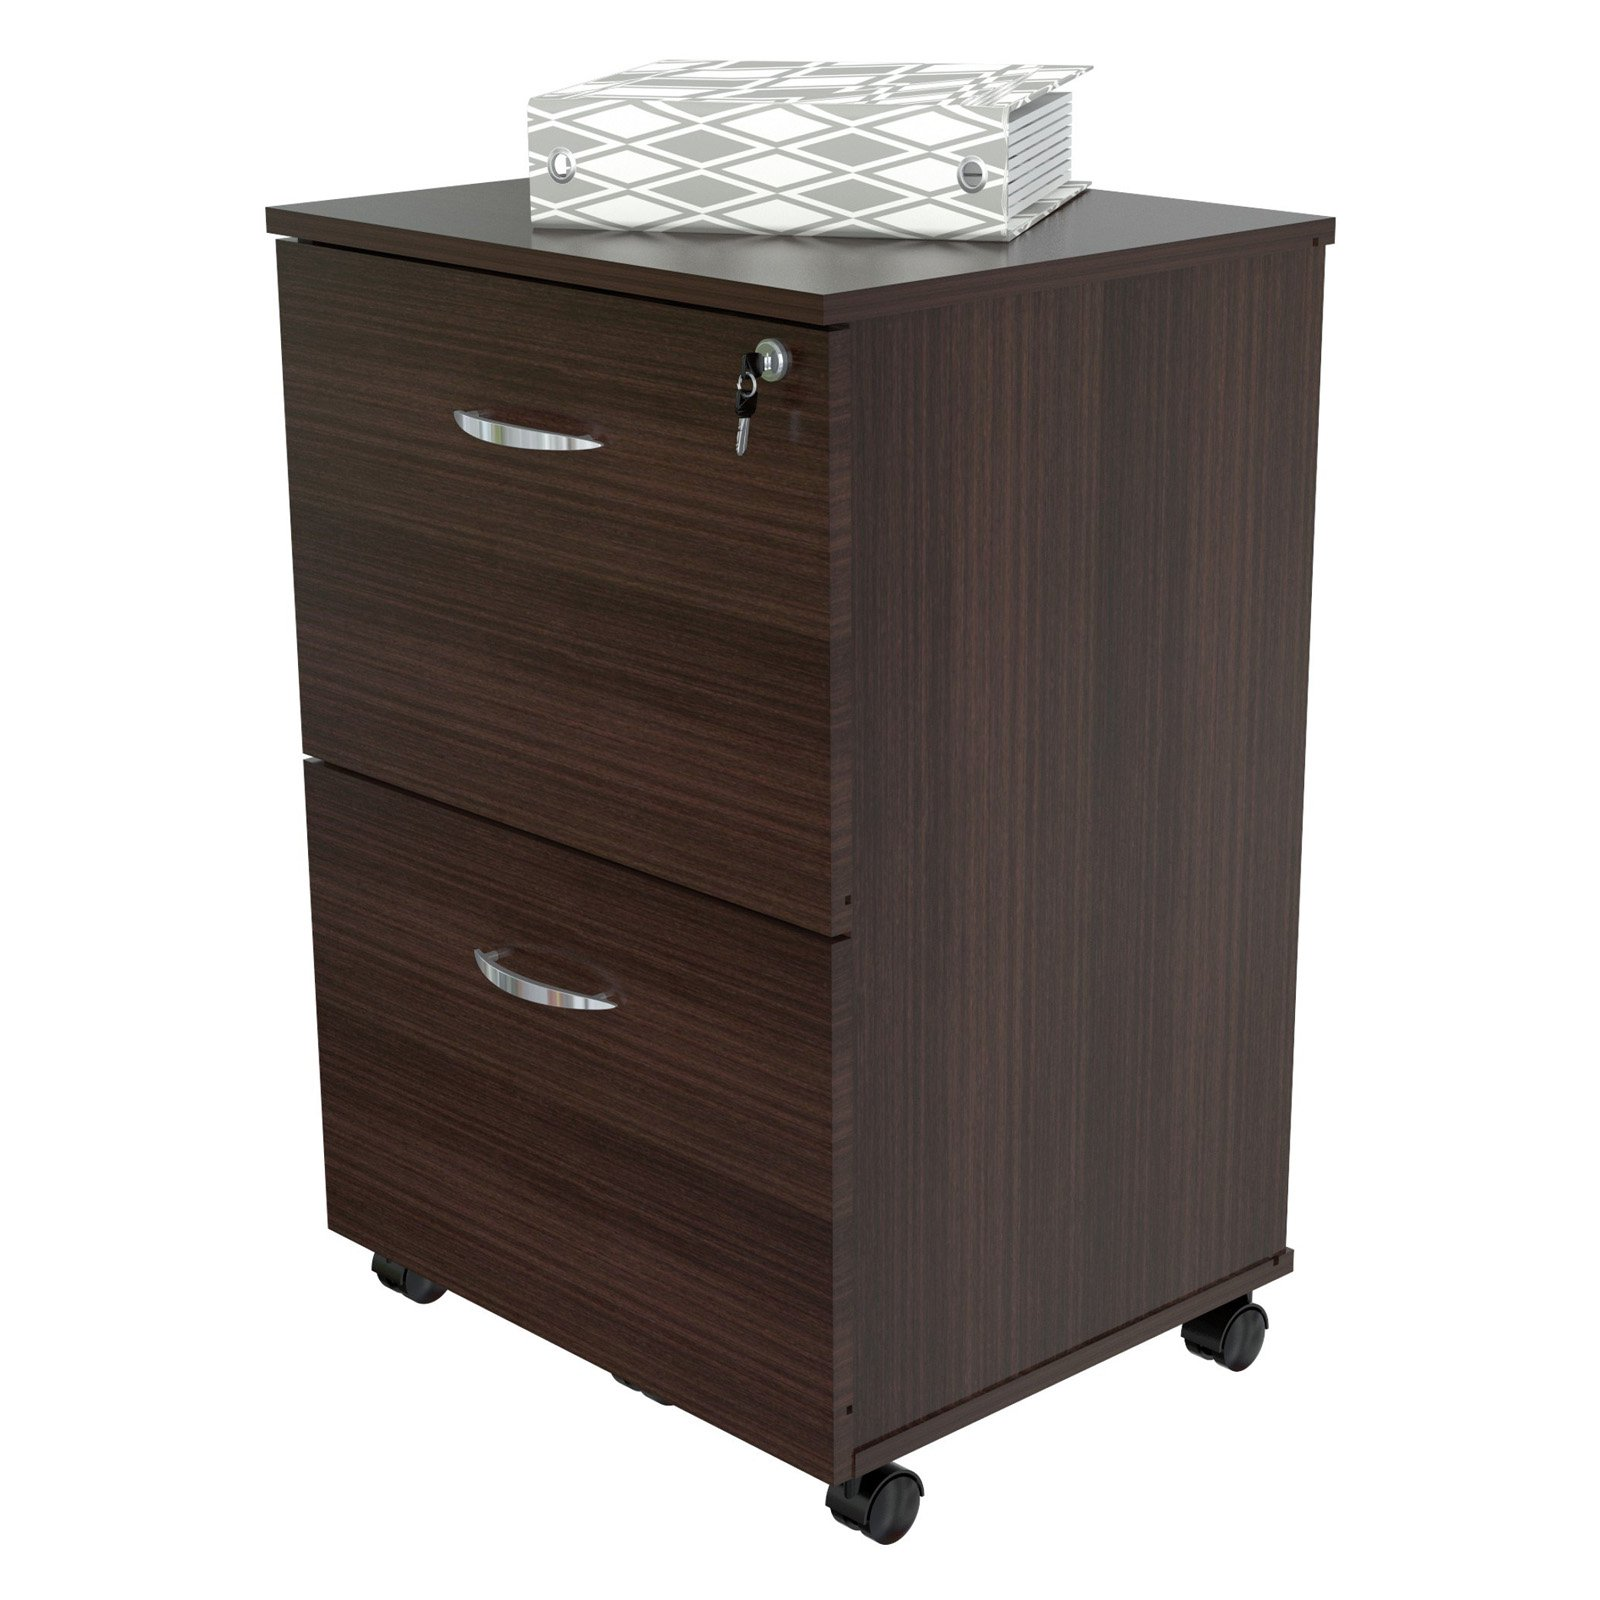 Inval 2 Drawer Vertical Wood Lockable Filing Cabinet, Espresso